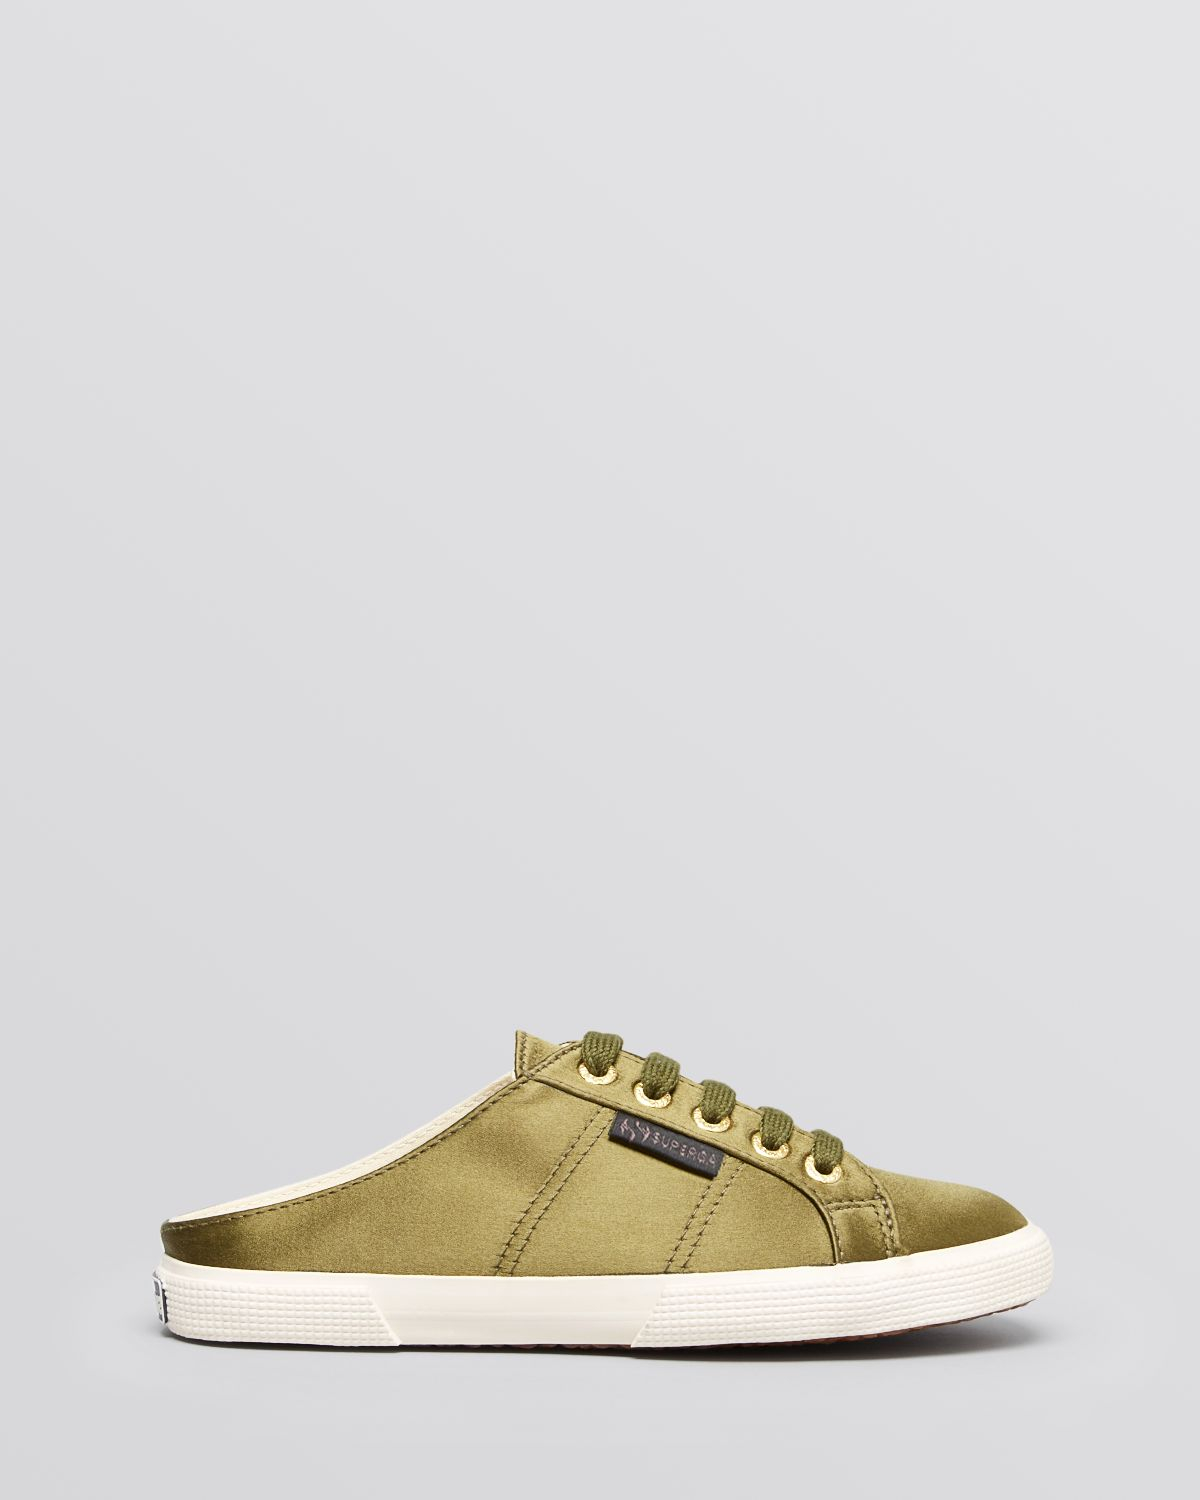 amazing price online Man Repeller x Superga Satin Low-Top Sneakers free shipping websites J62hxbFb